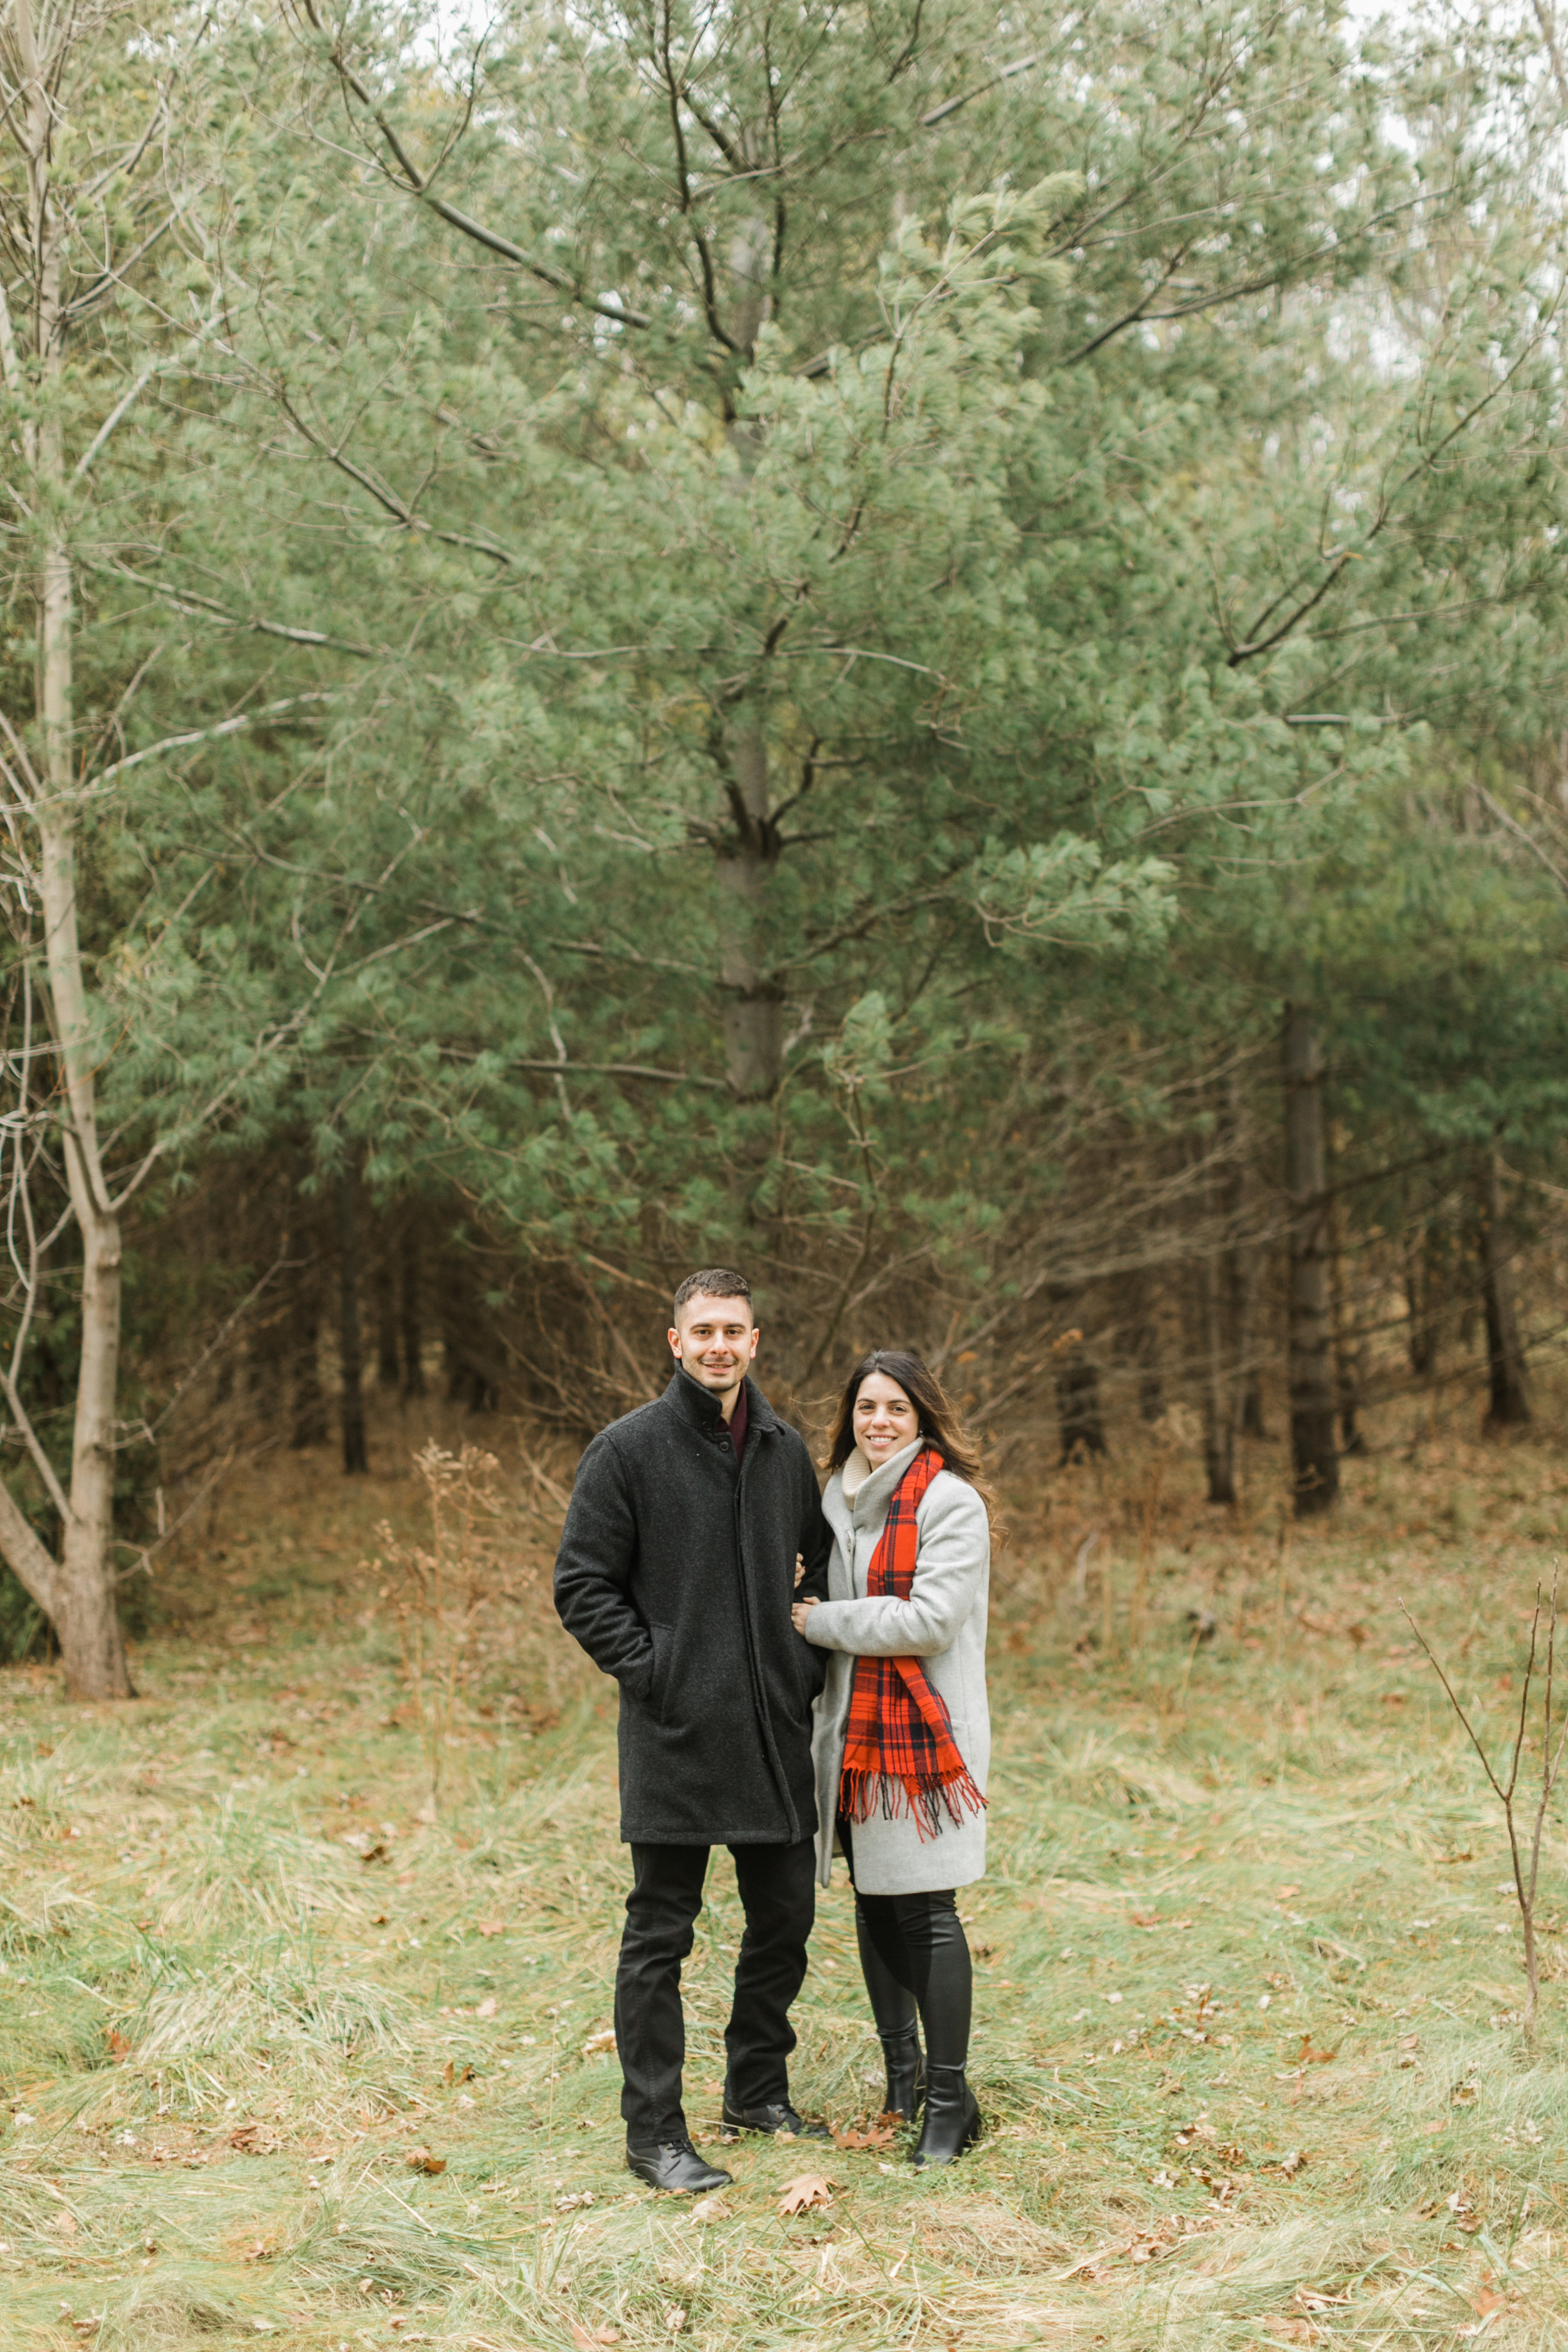 Alicia + Vince - Engagement Session High Res. Finals-0003.jpg